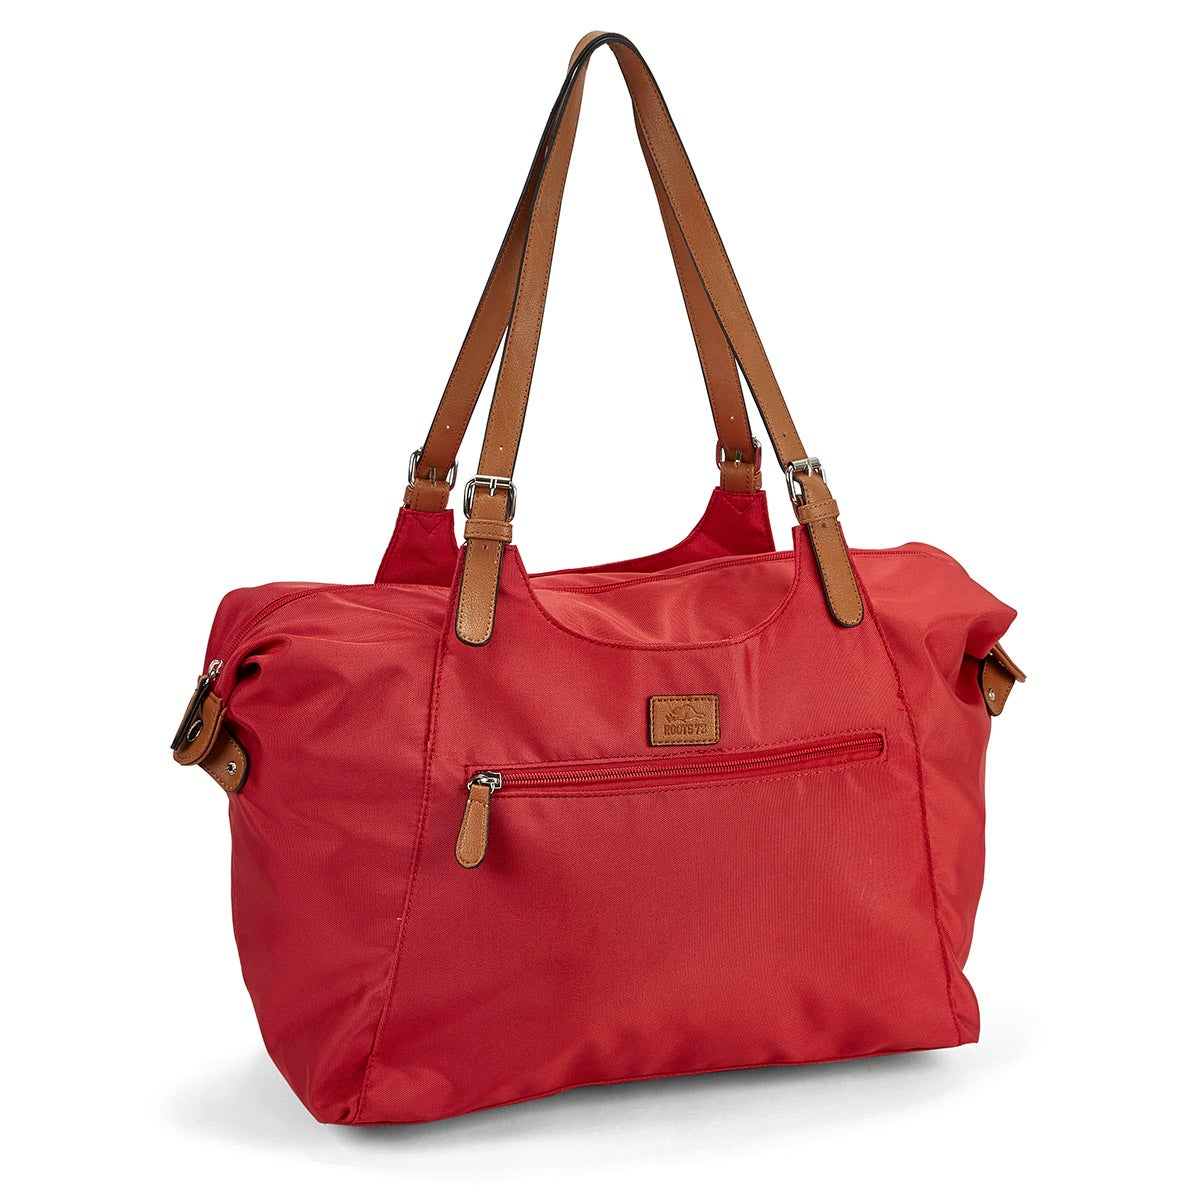 Women's R4700 red large tote bag